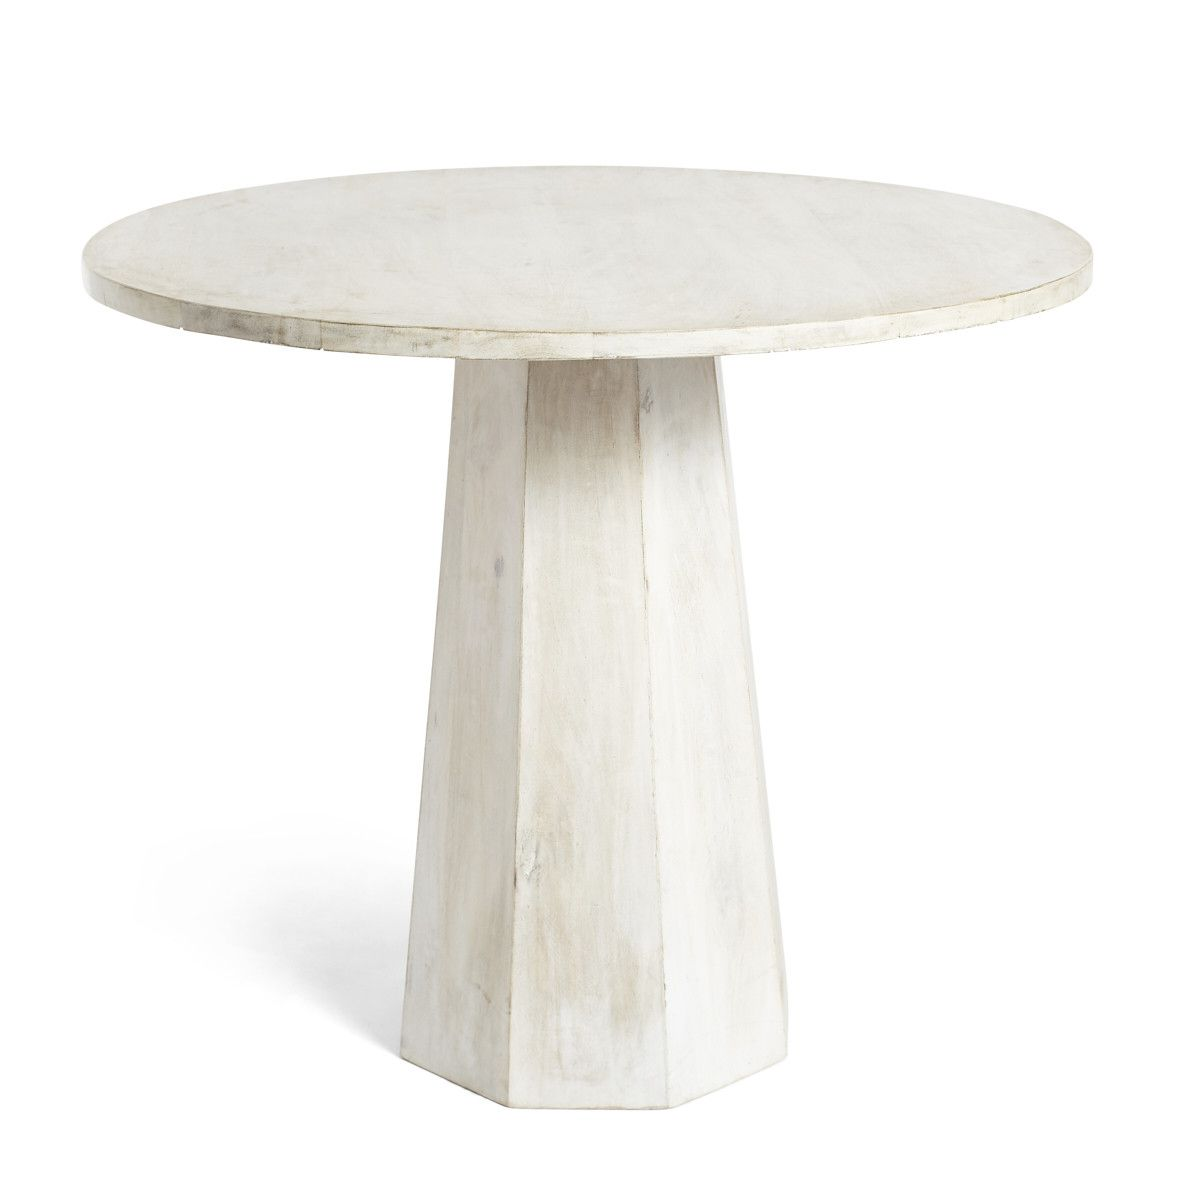 36dx 30h 689 Wisteria Pedestal Side Table Round Foyer Table Round Marble Table